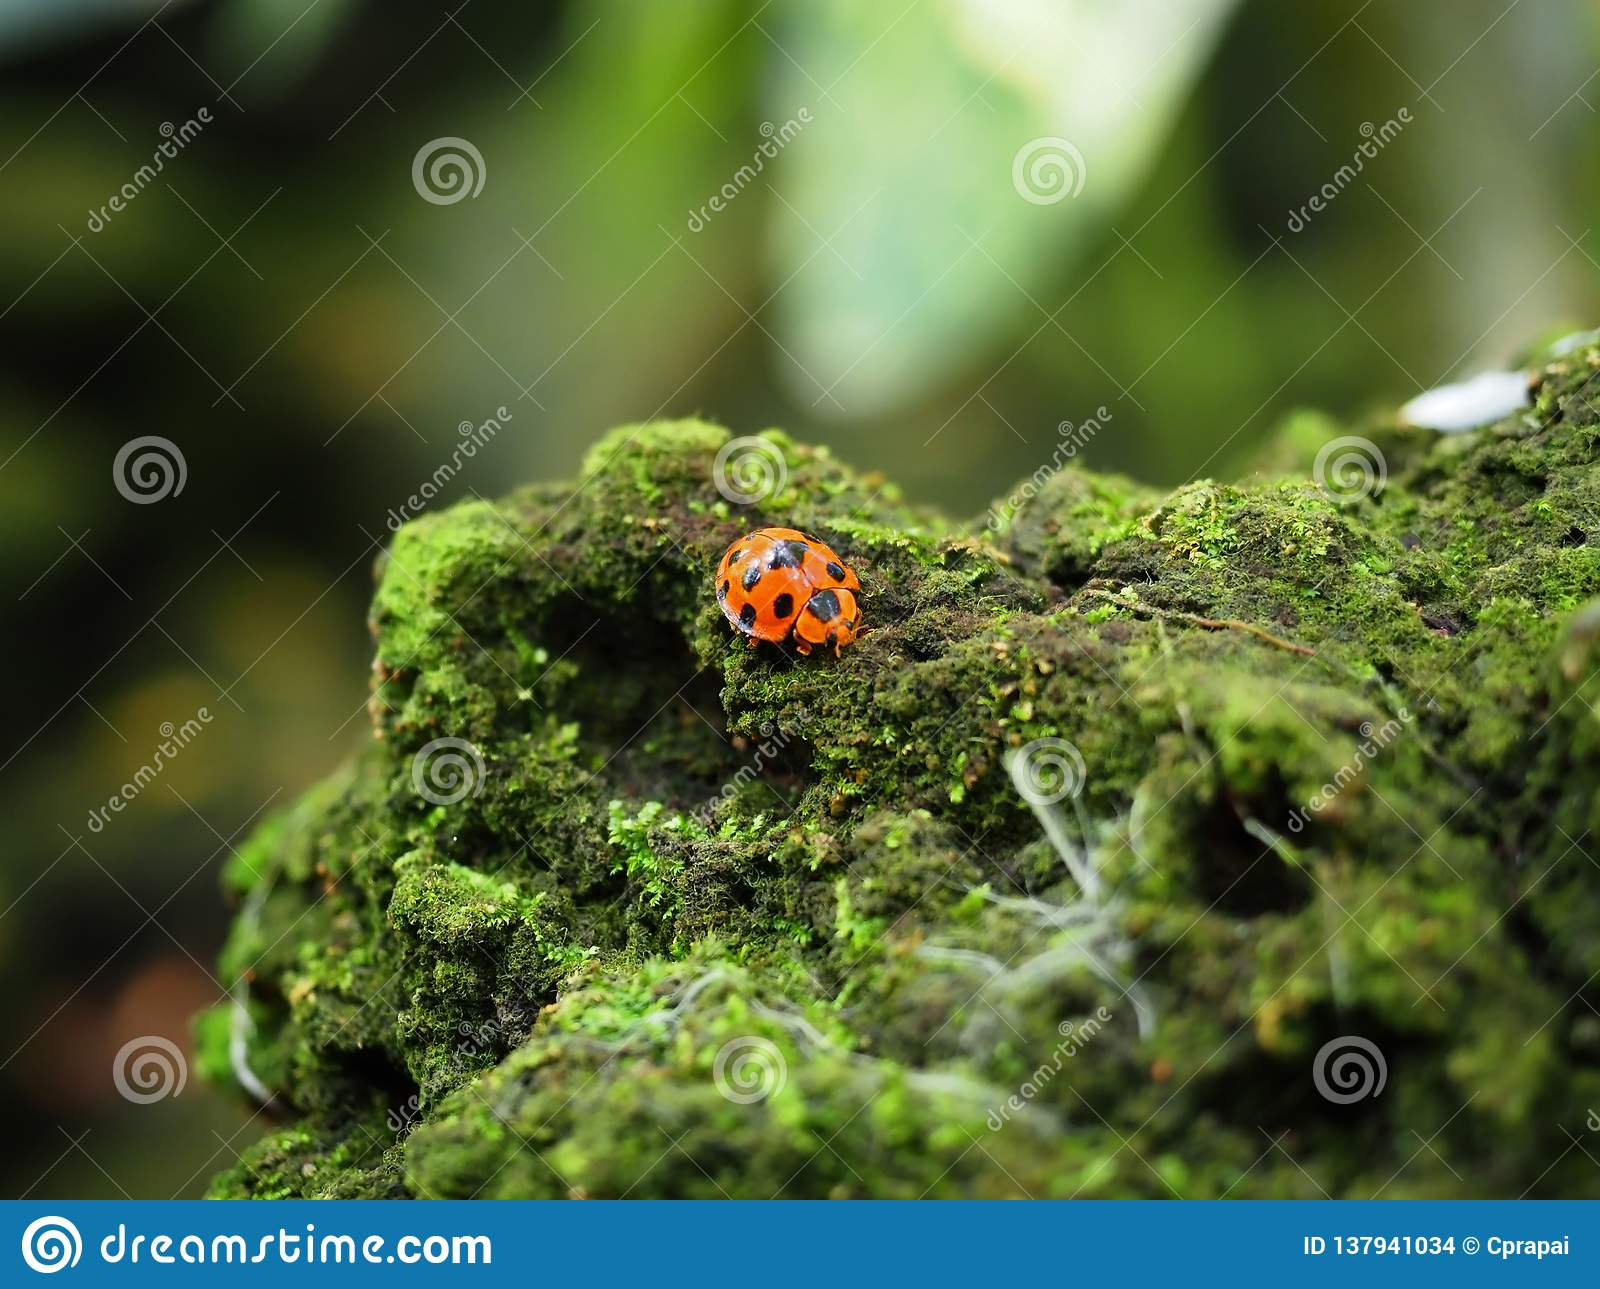 Red beetle bug walking on a rock that coverd in green fungus and moss. Selected focus